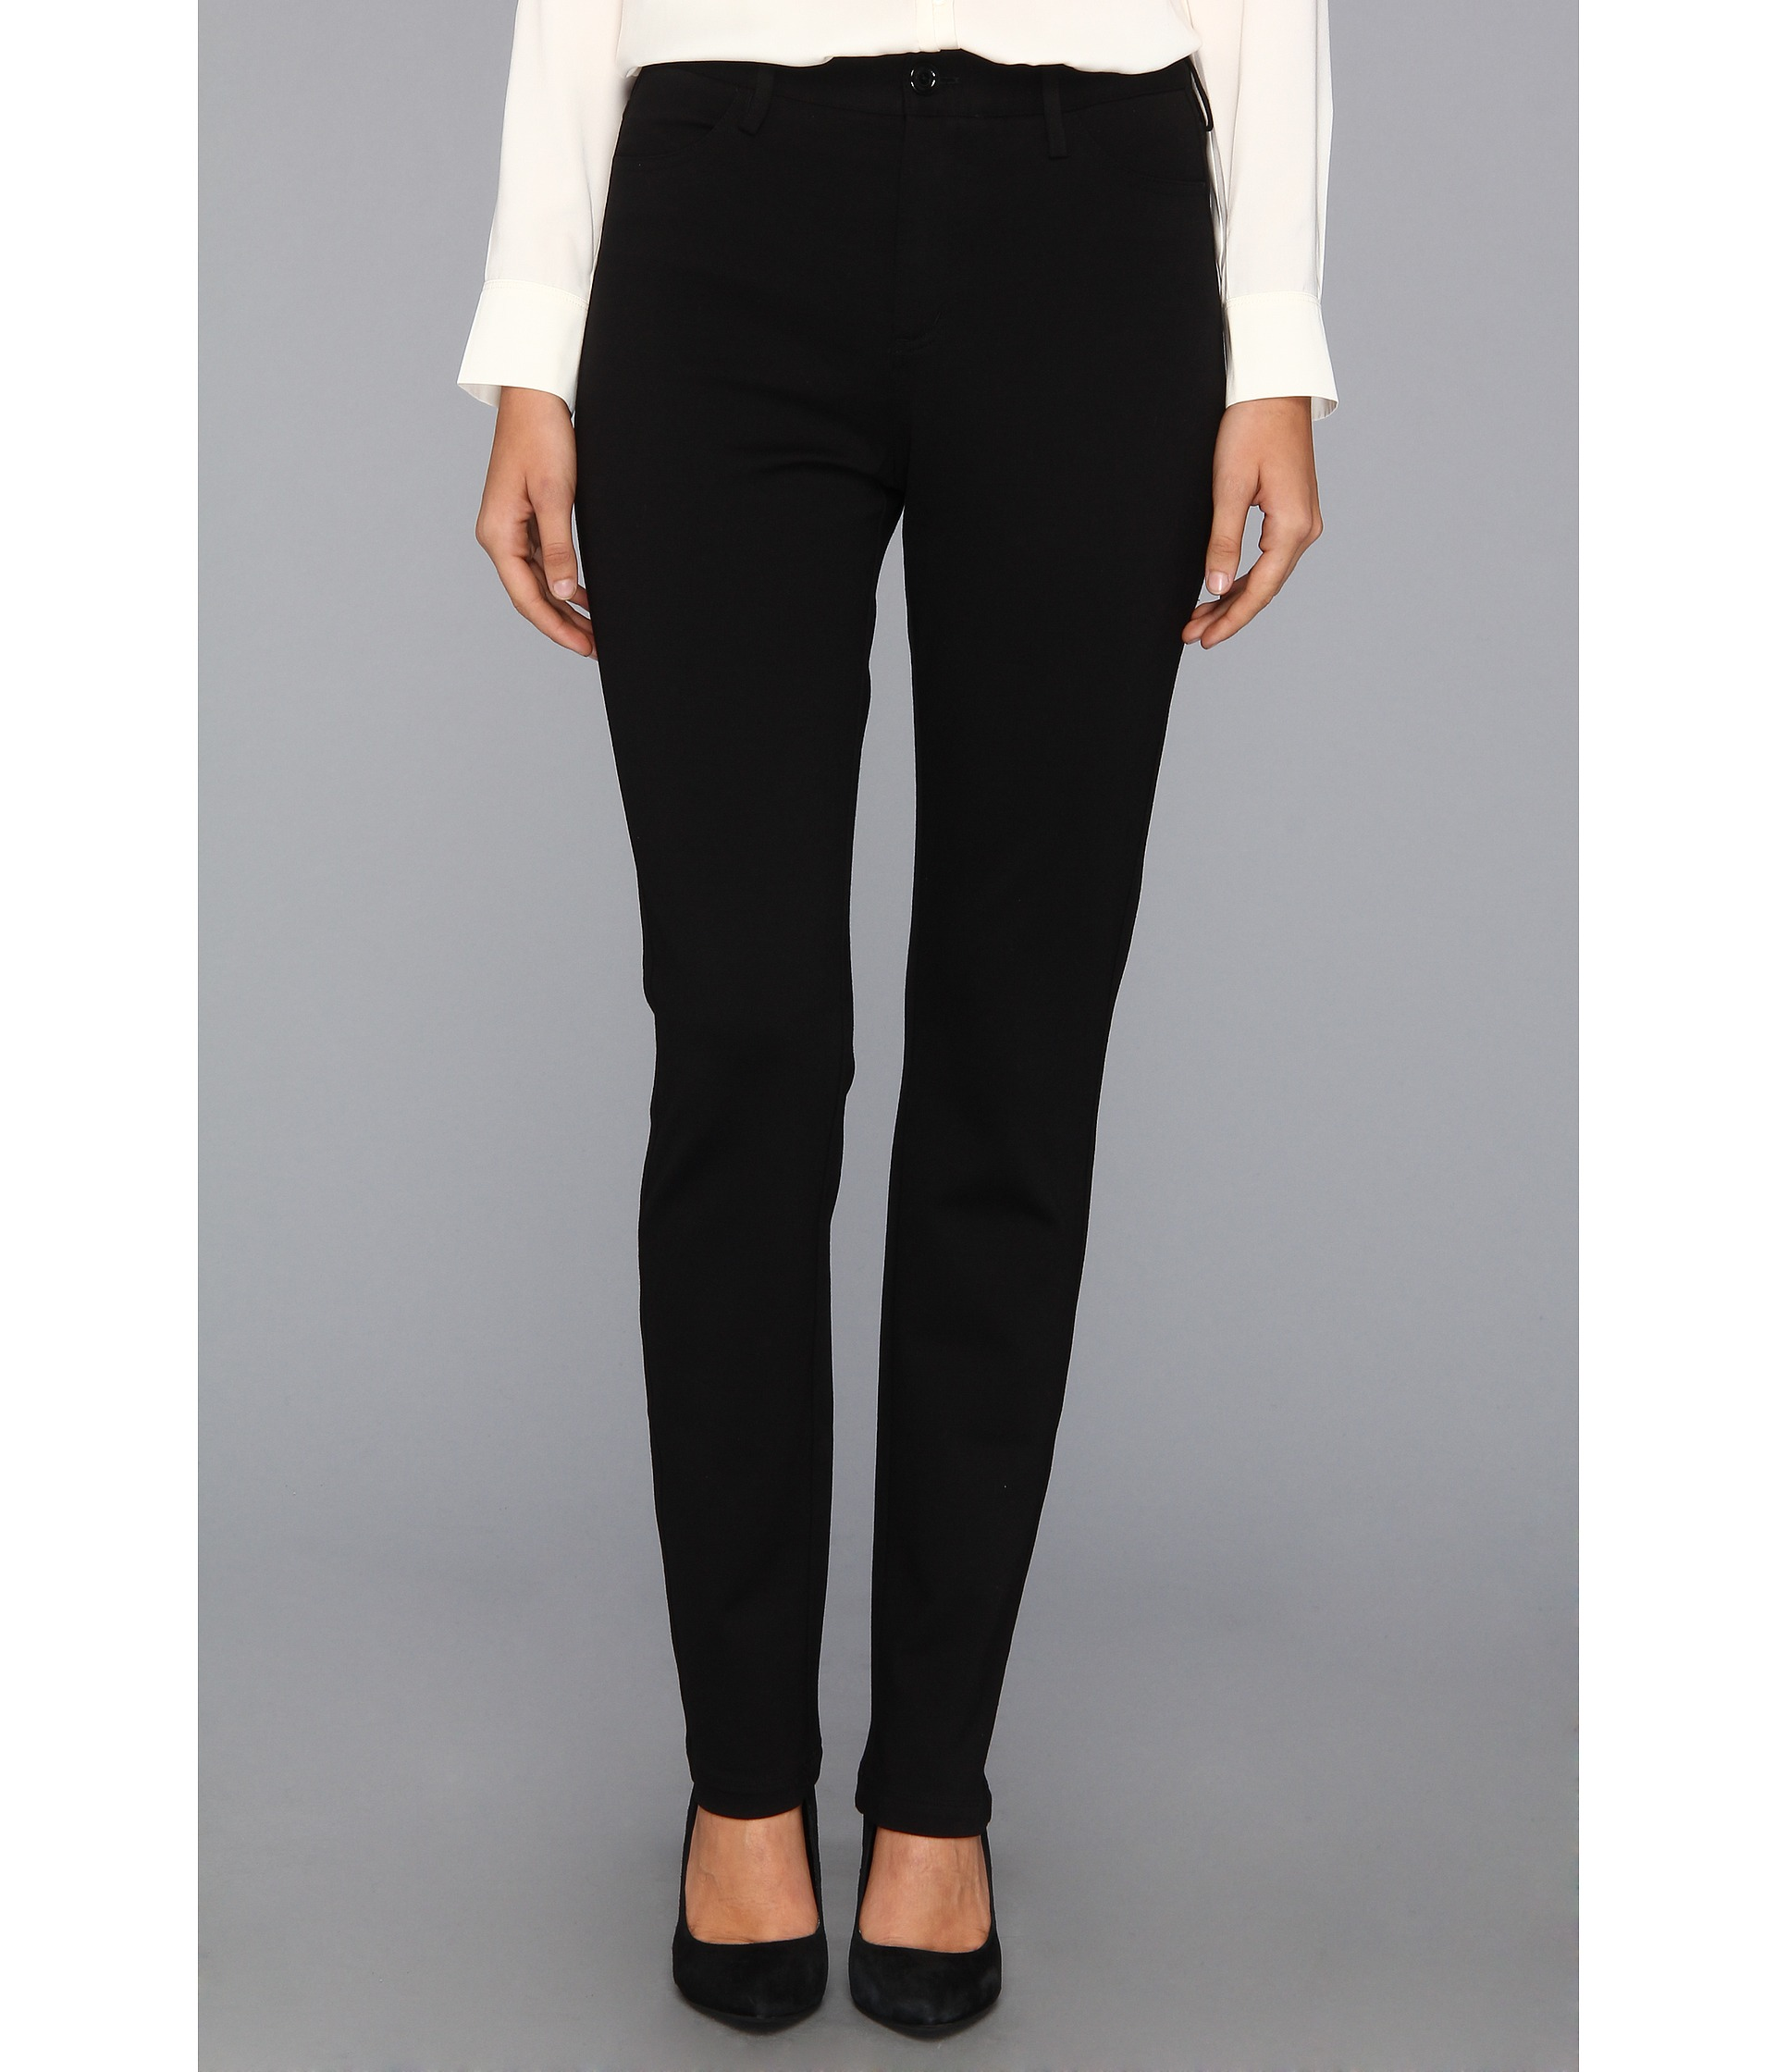 womens black ponte knit pants photo - 1